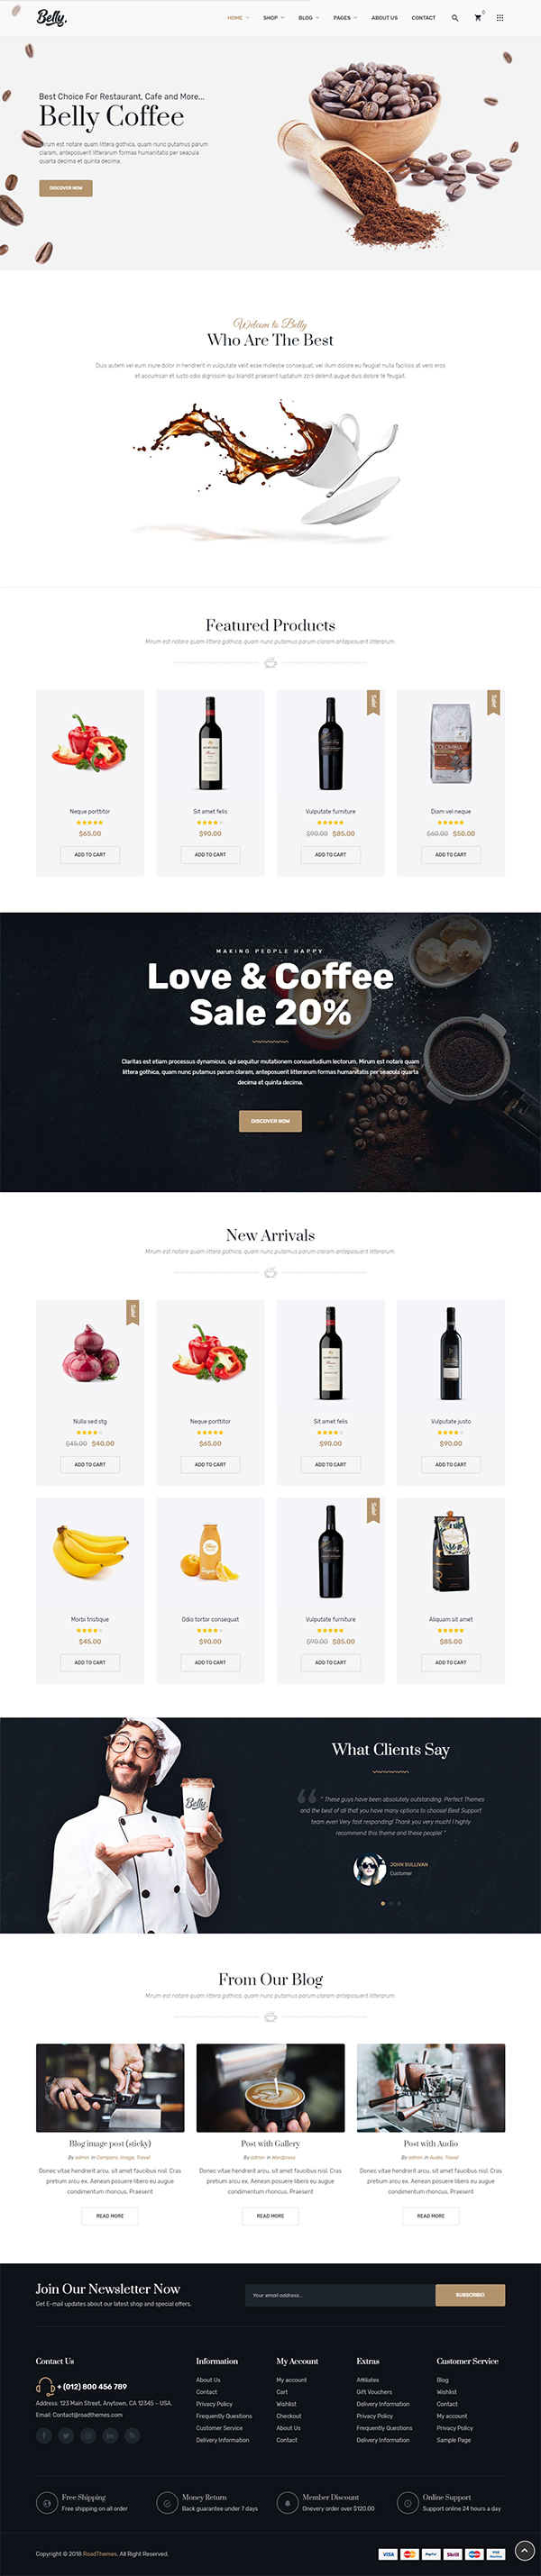 32 Best eShop eCommerce WordPress Themes Of 2019